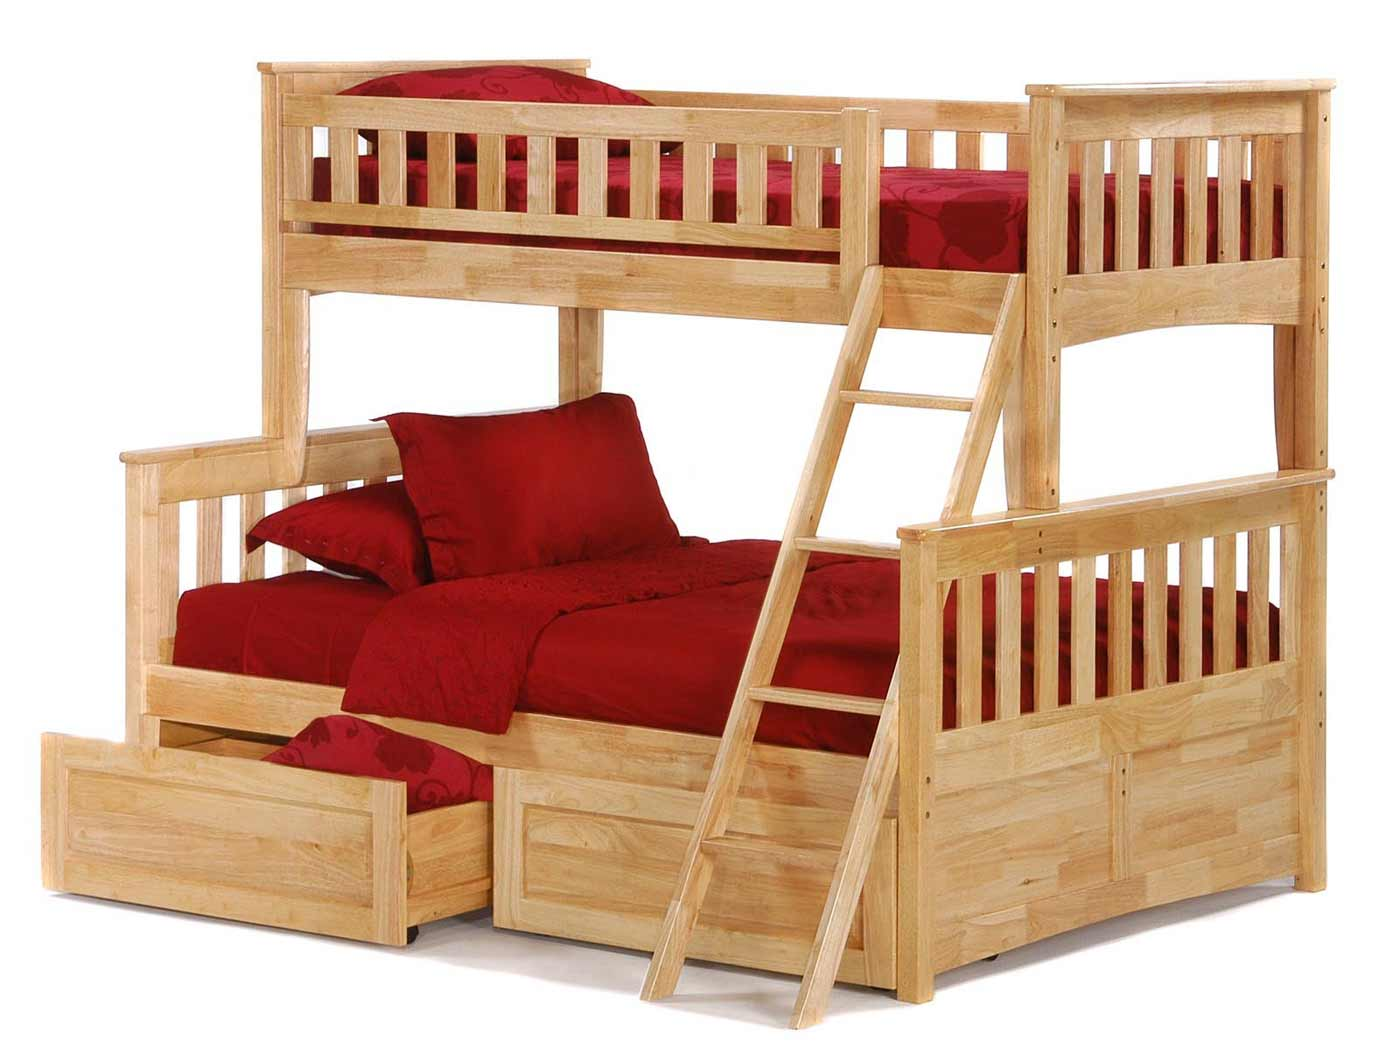 Variety Of Loft Beds For Adults With Integrated Ideas: Twin Over Full Size Red Accent Bunk Beds